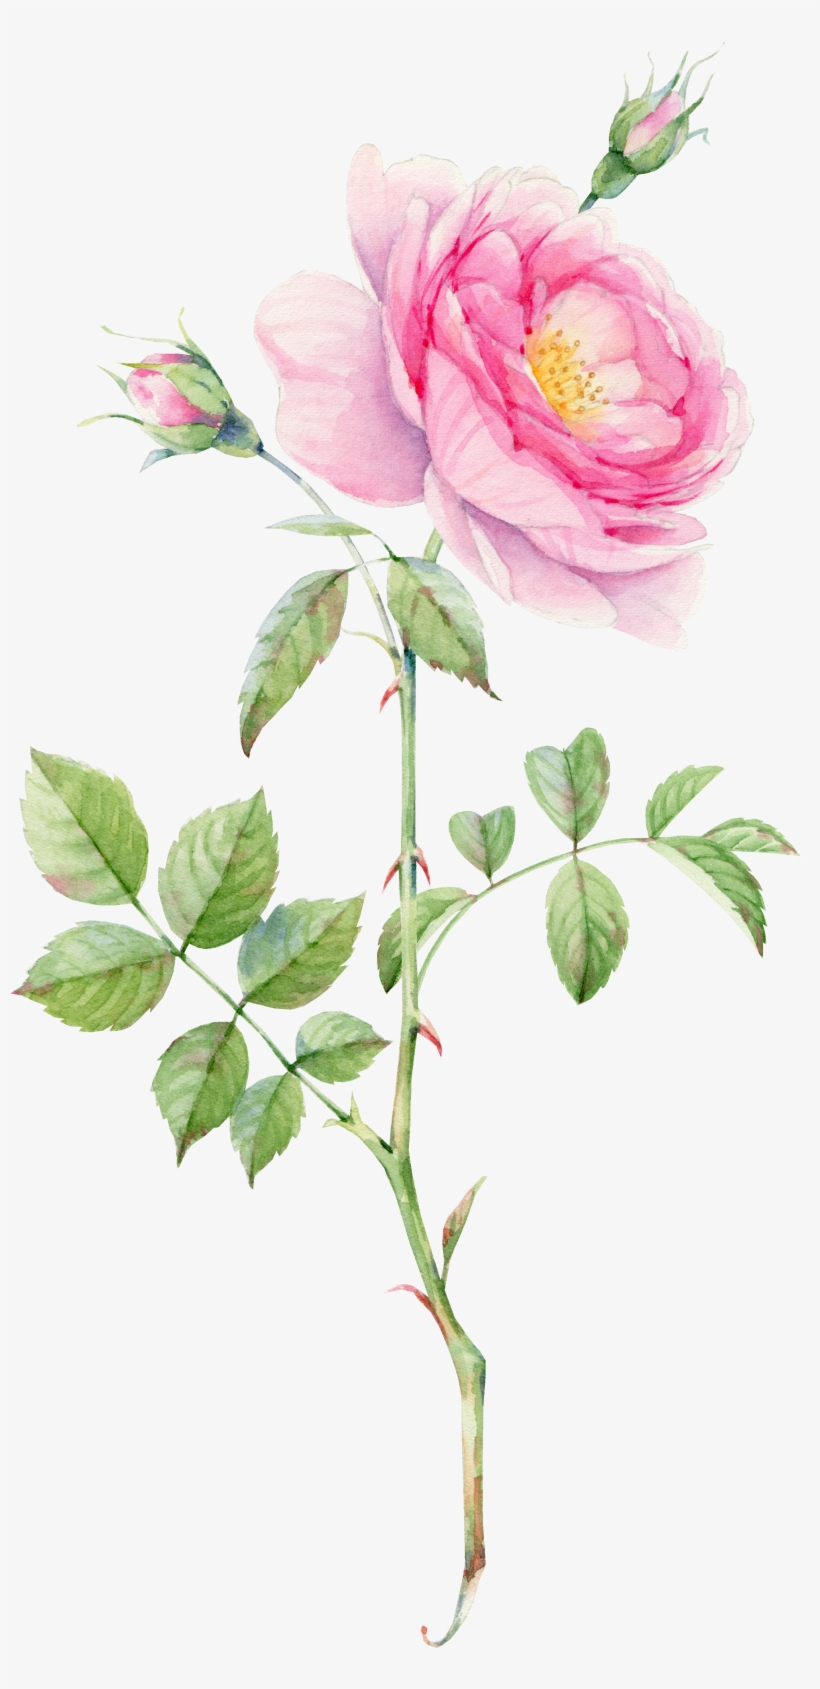 0 素材4 Plant Drawing Rose Bouquet Flower Bouquets Rose Leaf